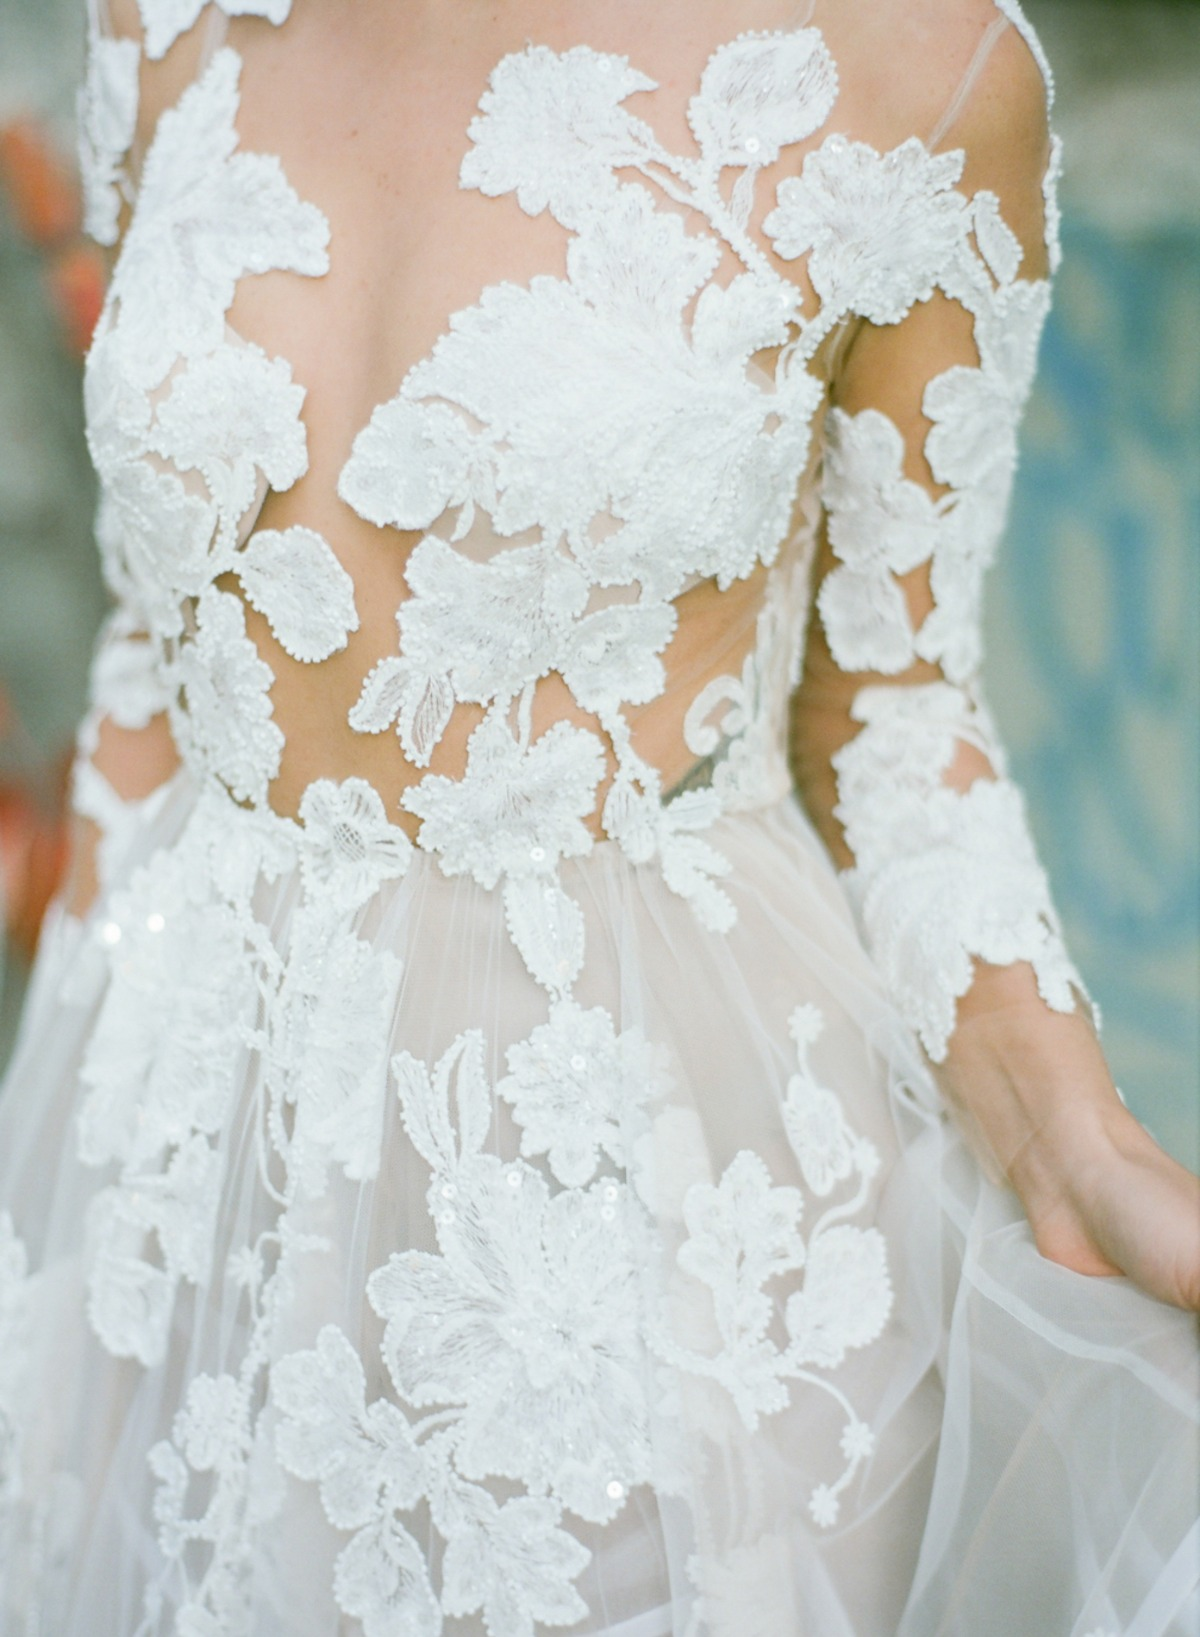 wedding dress by Gala Montenapoleone